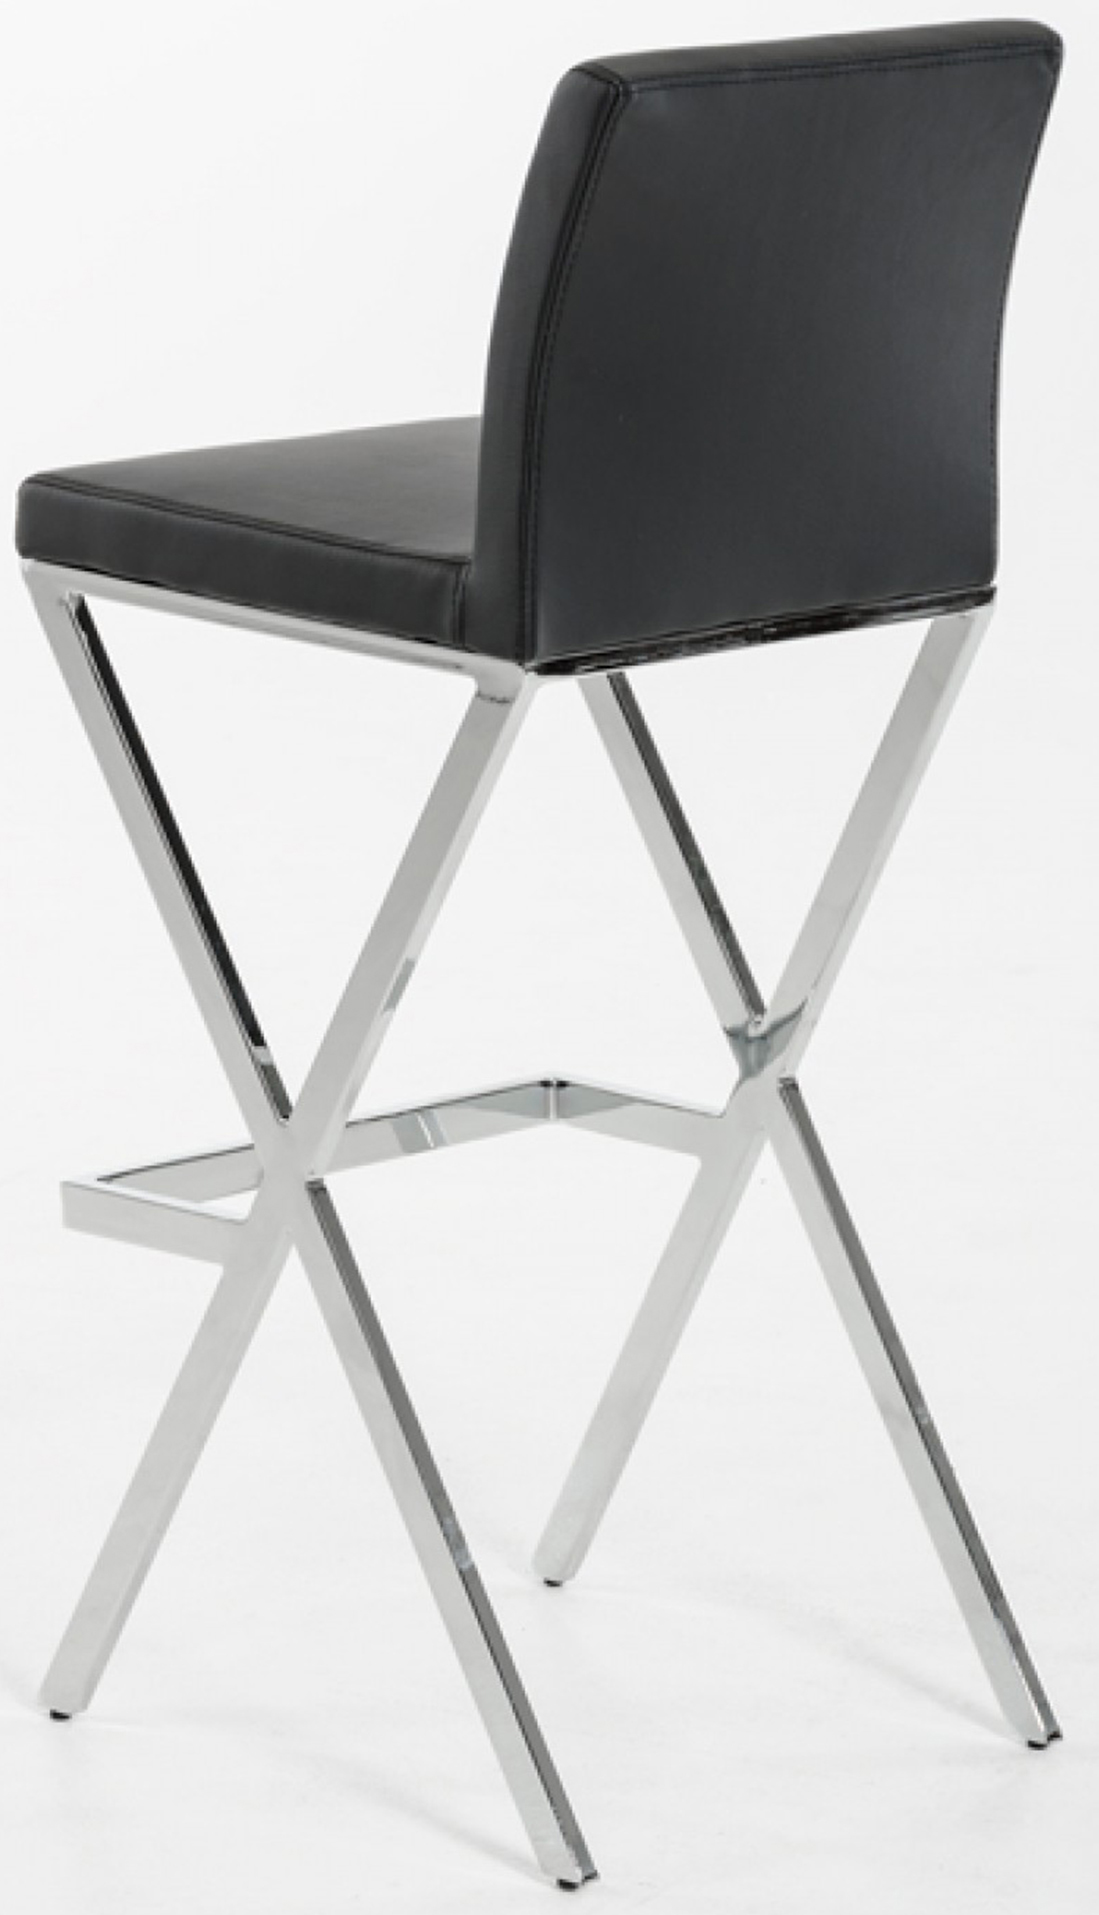 ... enjoy this brand new and elegant black bar stool in any dining room or kitchen. ... & Bettina Modern Bar Stool In Black - Modern Barstool islam-shia.org